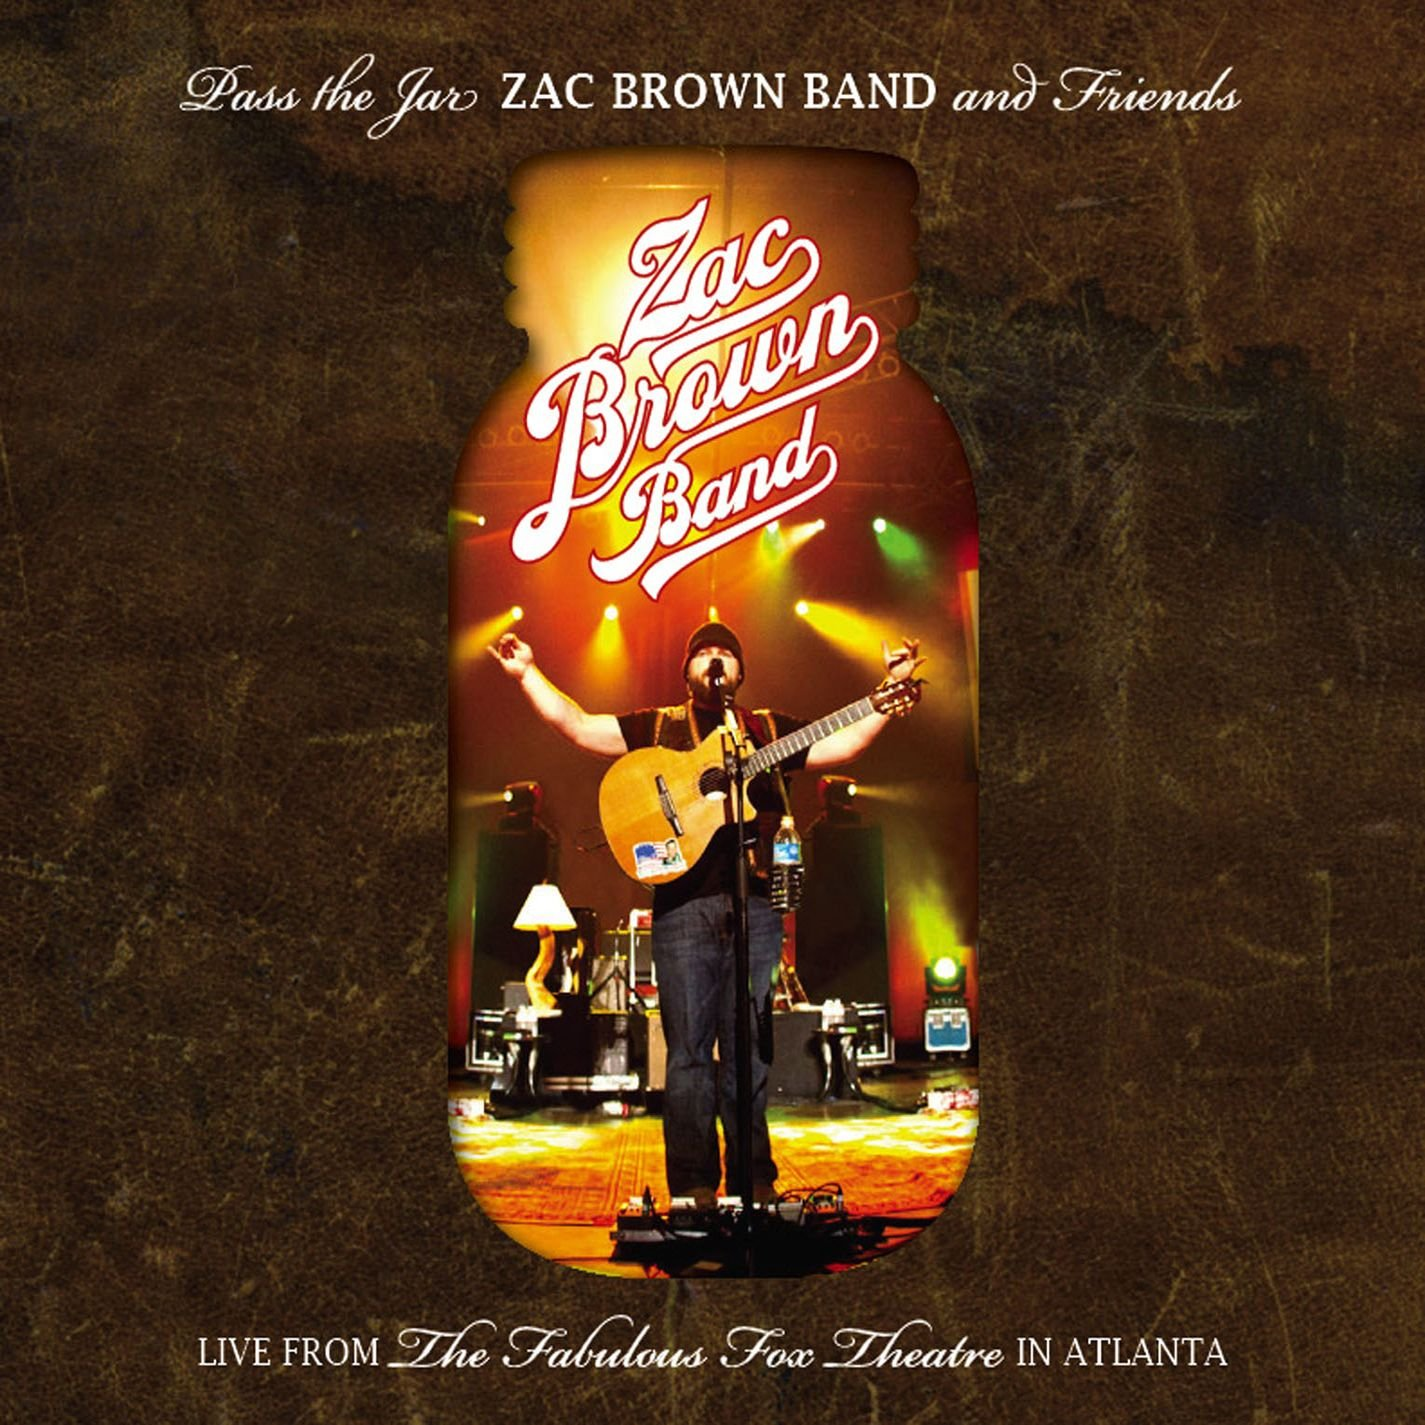 Pass The Jar - Zac Brown Band and Friends Live from the Fabulous Fox Theatre In Atlanta (2CD/1DVD) by Atlantic (Label)